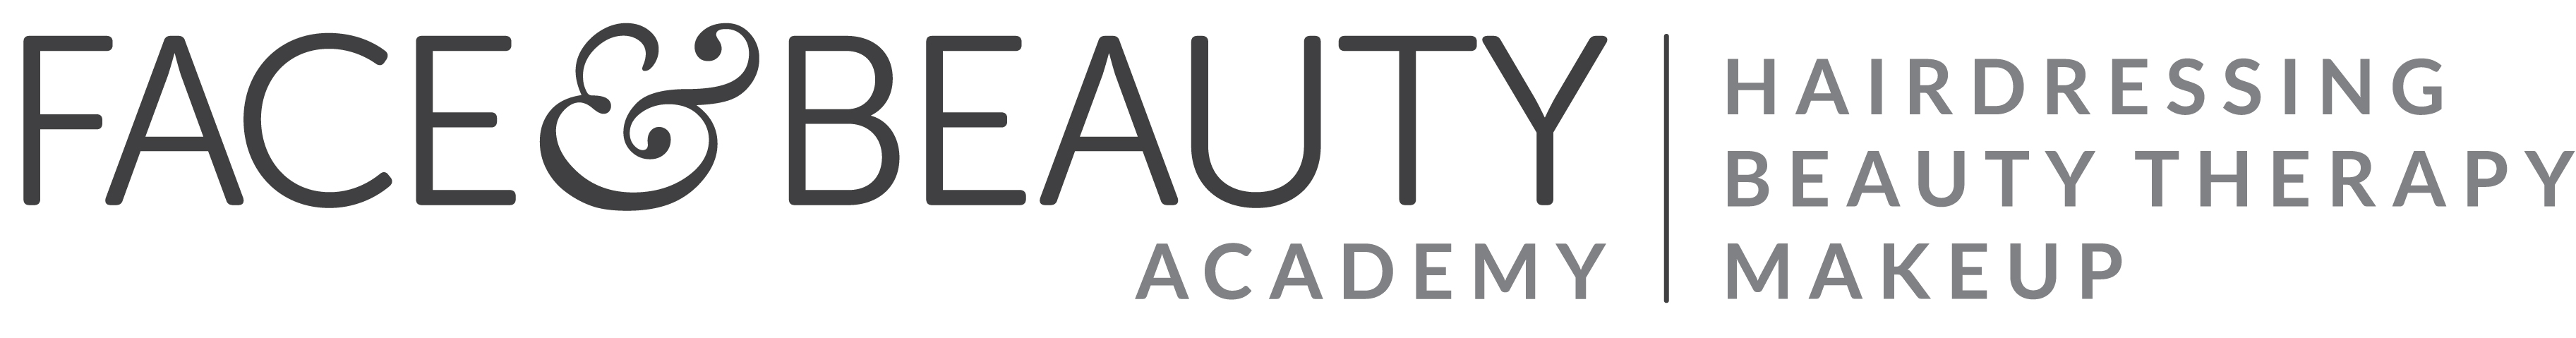 Face & Beauty Academy